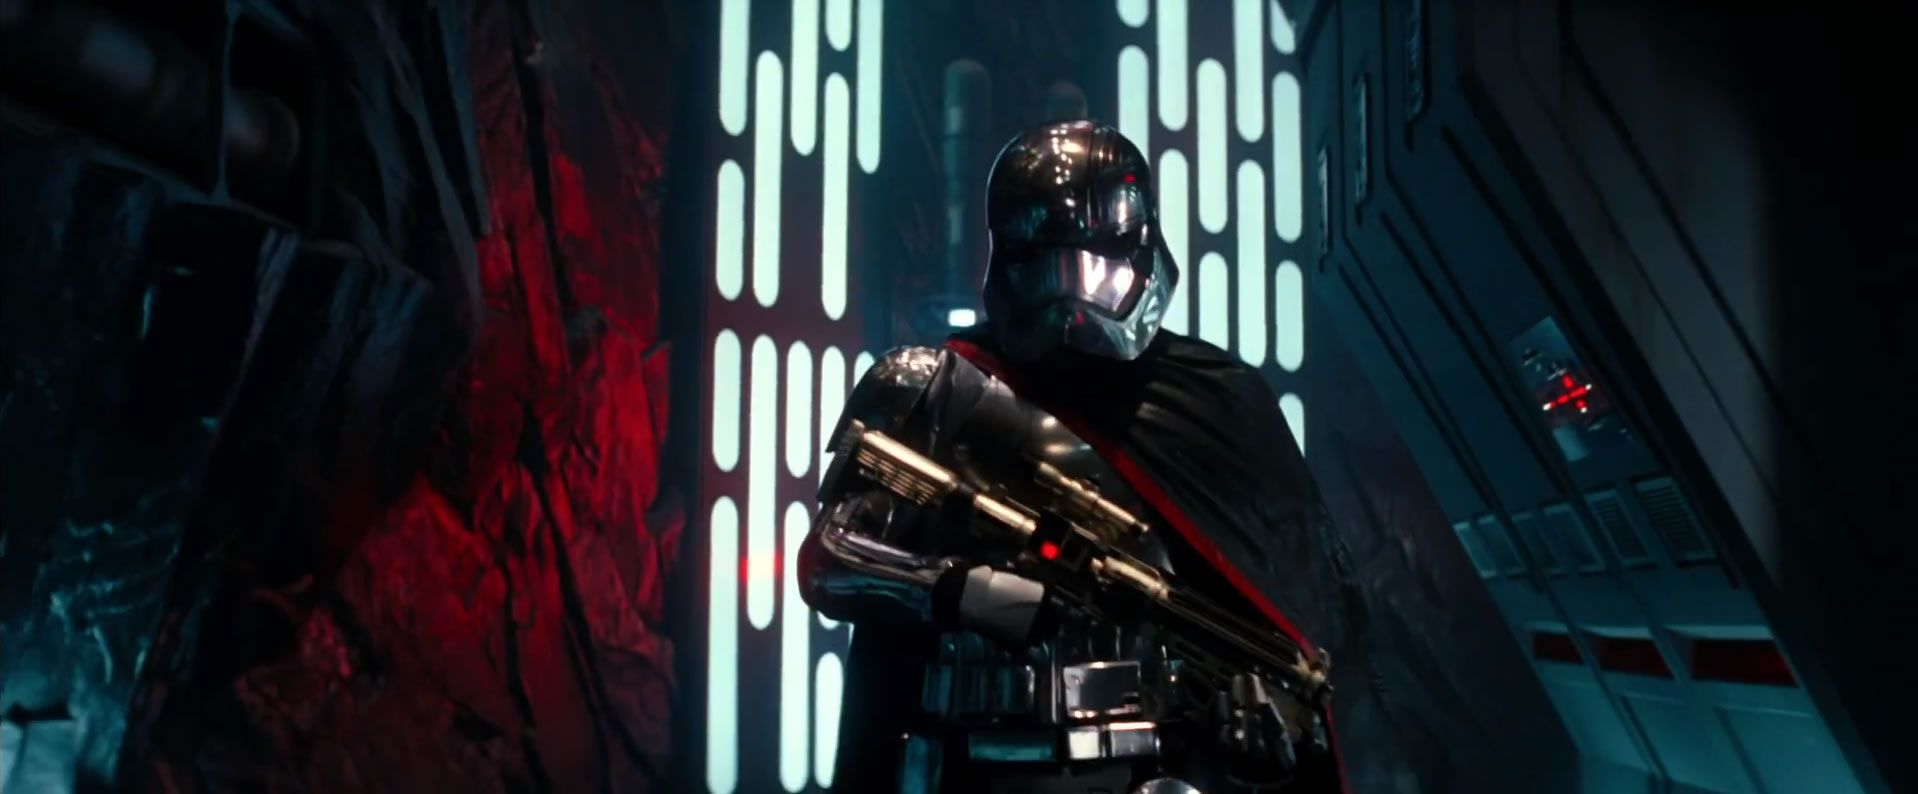 Star Wars 7 Images from the New Trailer | Collider